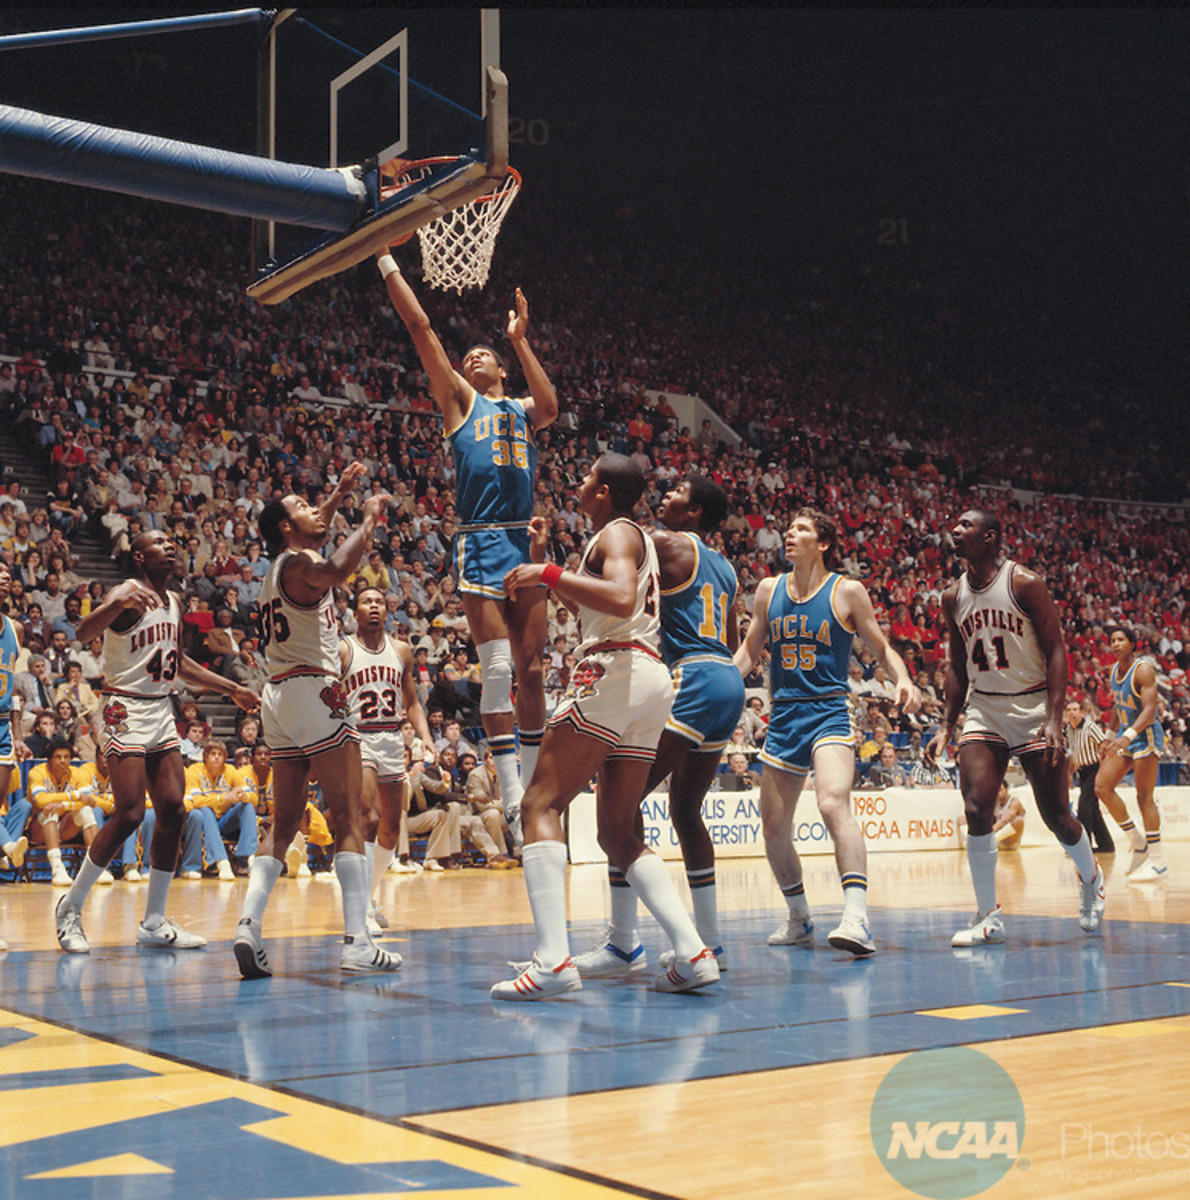 24 MAR 1980:  UCLA forward James Wilkes (35), forward Mike Sanders (11), forward Kiki Vandeweghe (55), and Louisville forward Derek Smith (43), guard Darrell Griffith (35), guard Tony Branch (23), forward Scooter McCray (21) and center Wiley Brown (41) during the NCAA Men's National Basketball Final Four championship game held in Indainapolis, IN, at the Market Square Arena. Louisville defeated UCLA 59-54 for the championship. Photo by Rich Clarkson/NCAA PhotosSI CD 0023-29